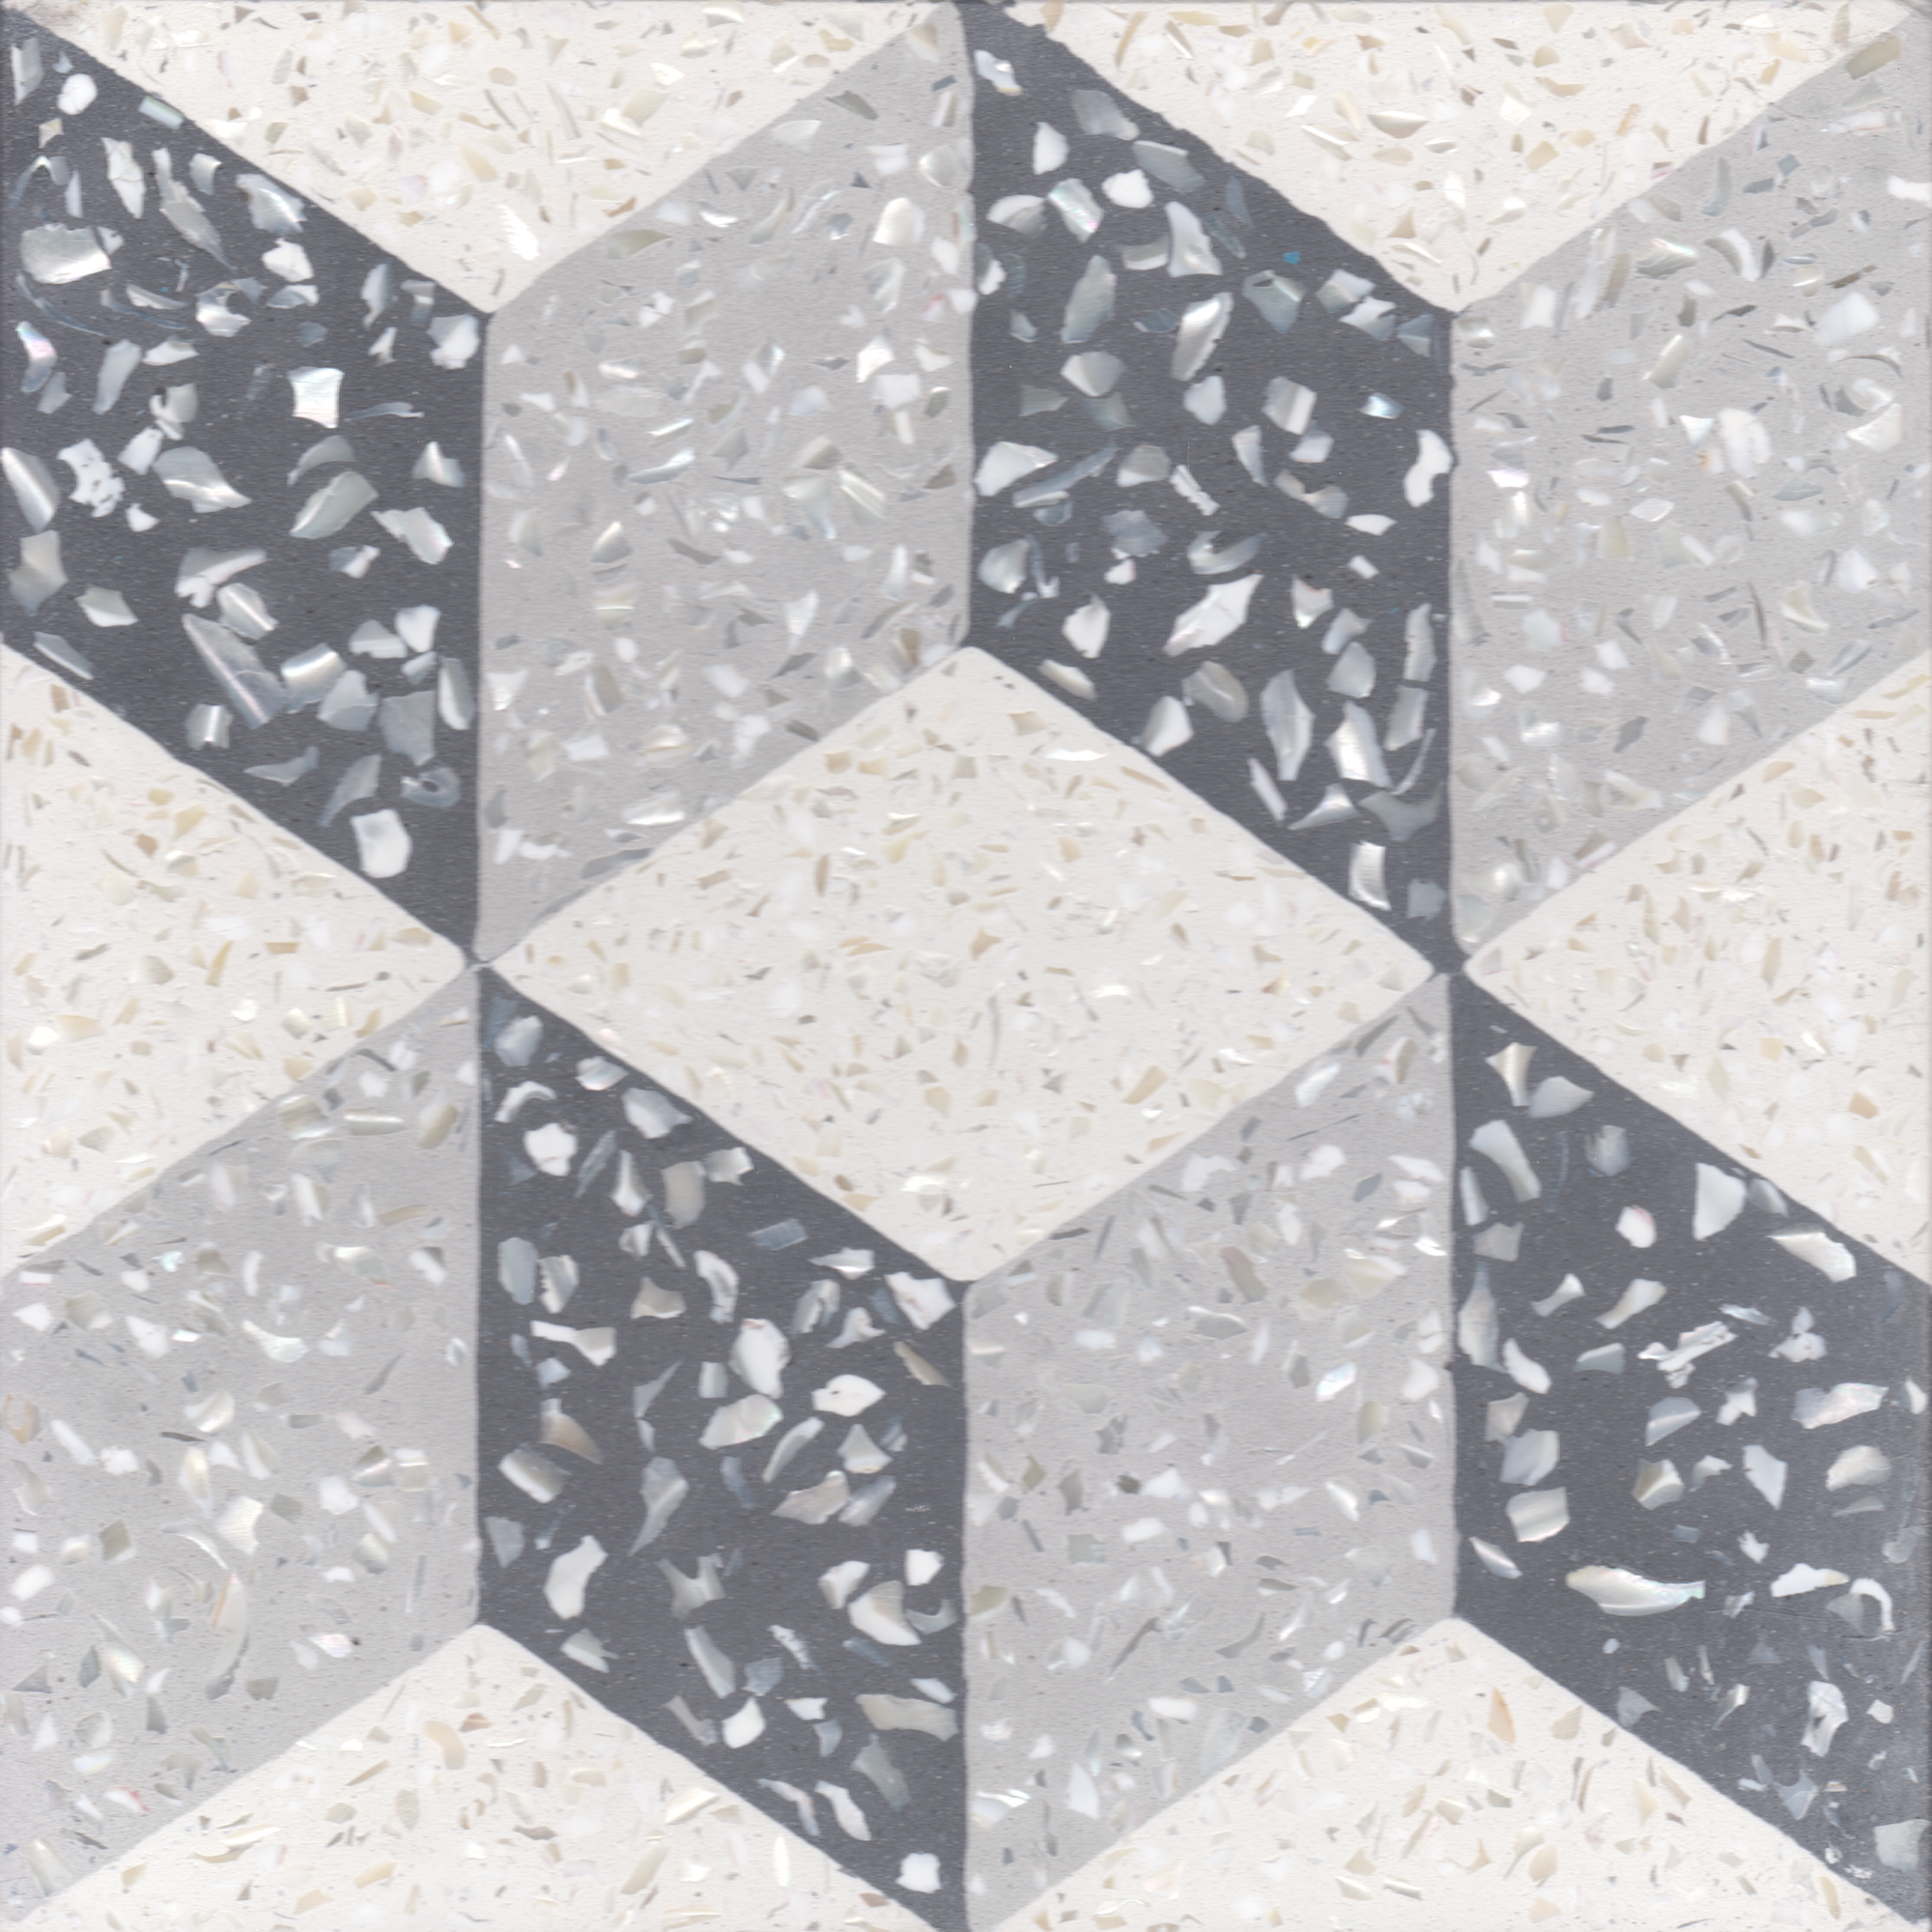 Villa Laggon Tile's Cubes A with mother of pearl terrazzo